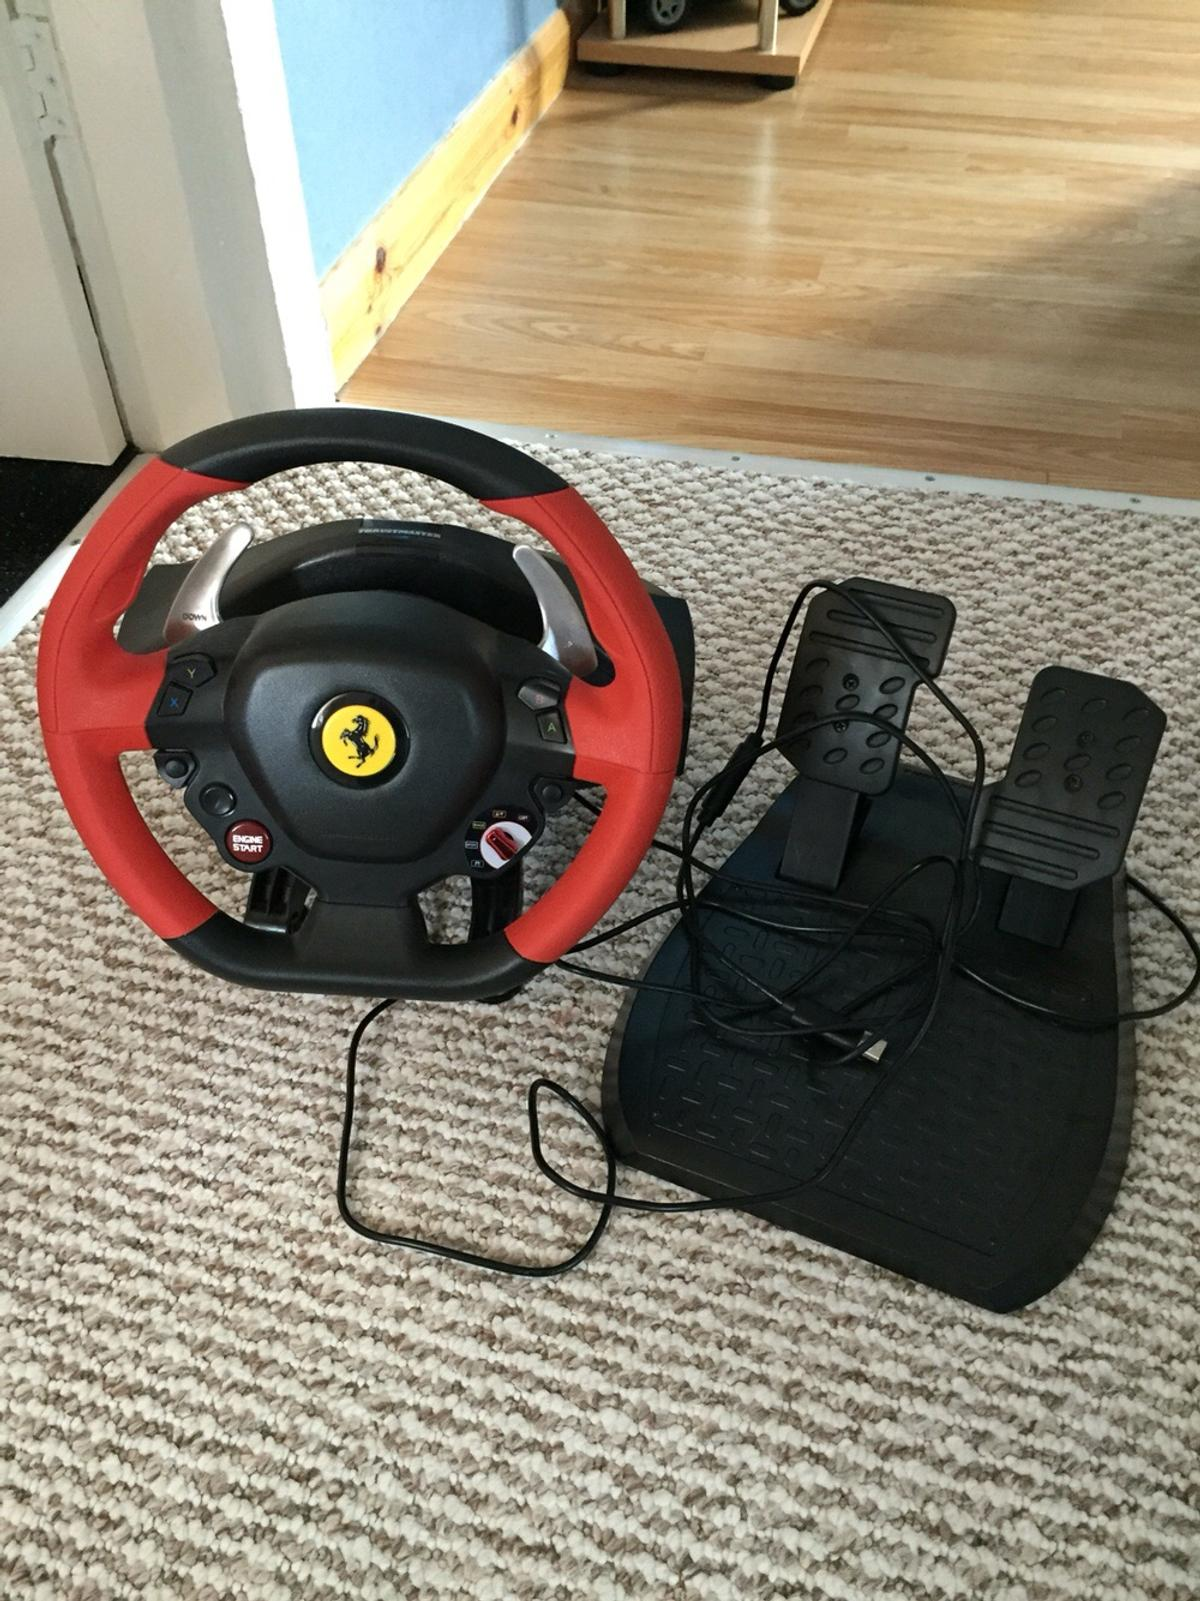 15b6b372c1f Xbox one steering wheel in DH6 Hill for £40.00 for sale - Shpock